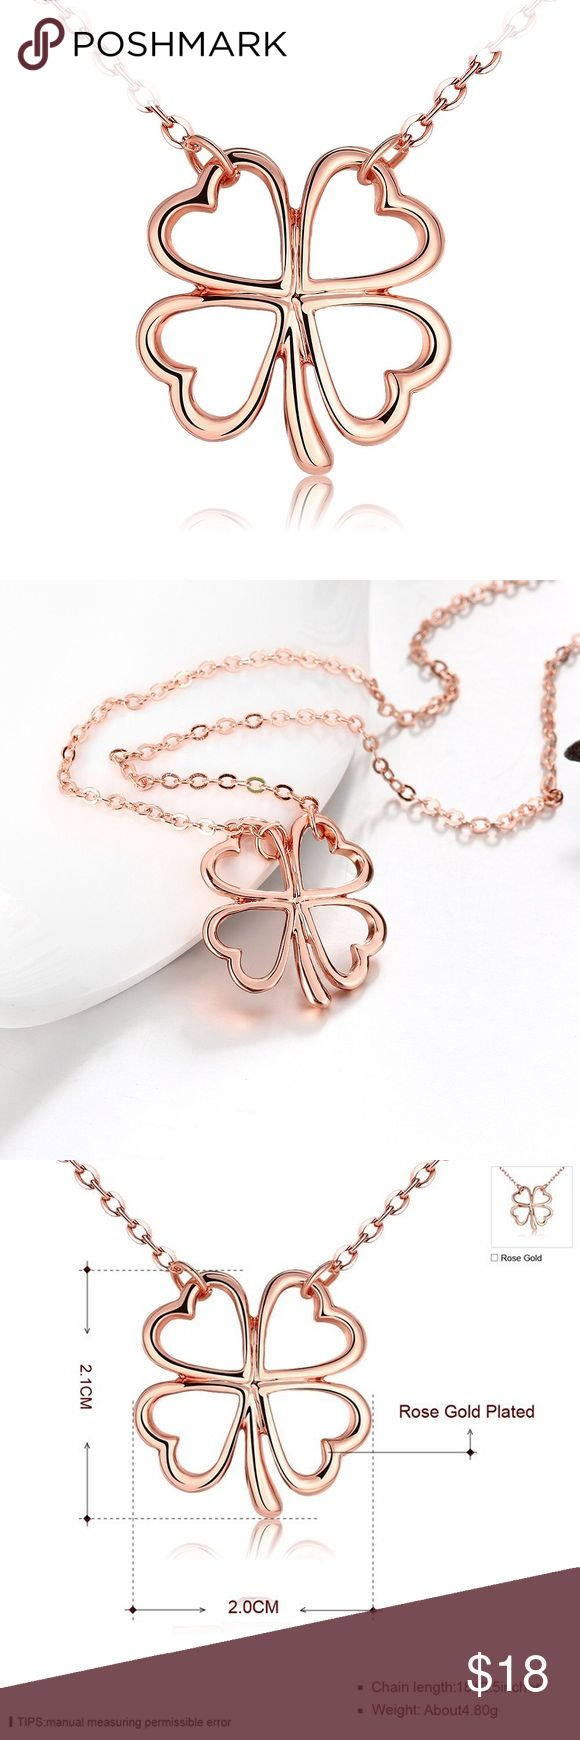 "Rose Gold Four Leaf Clover Necklace 18K rose gold plated four leaf clover necklace. The pendant is approximately 3/4"" x 3/4"". The chain is 18"" long. New in package, no tag. Jewelry Necklaces"